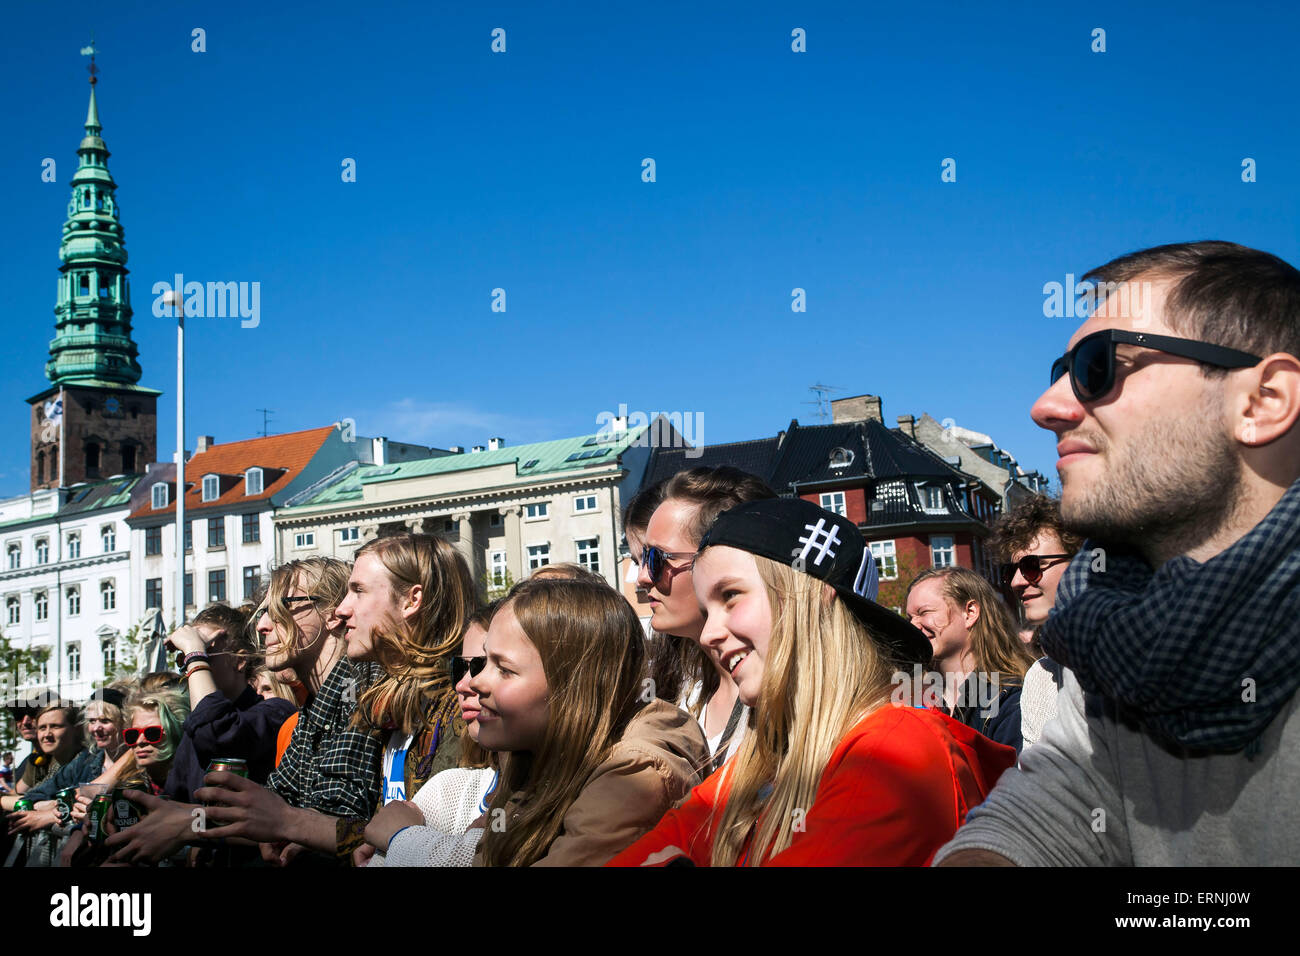 Copenhagen, Denmark, May 5th, 2015: Danish Constitution Day celebration continous into the streets around the Parliament - Stock Image